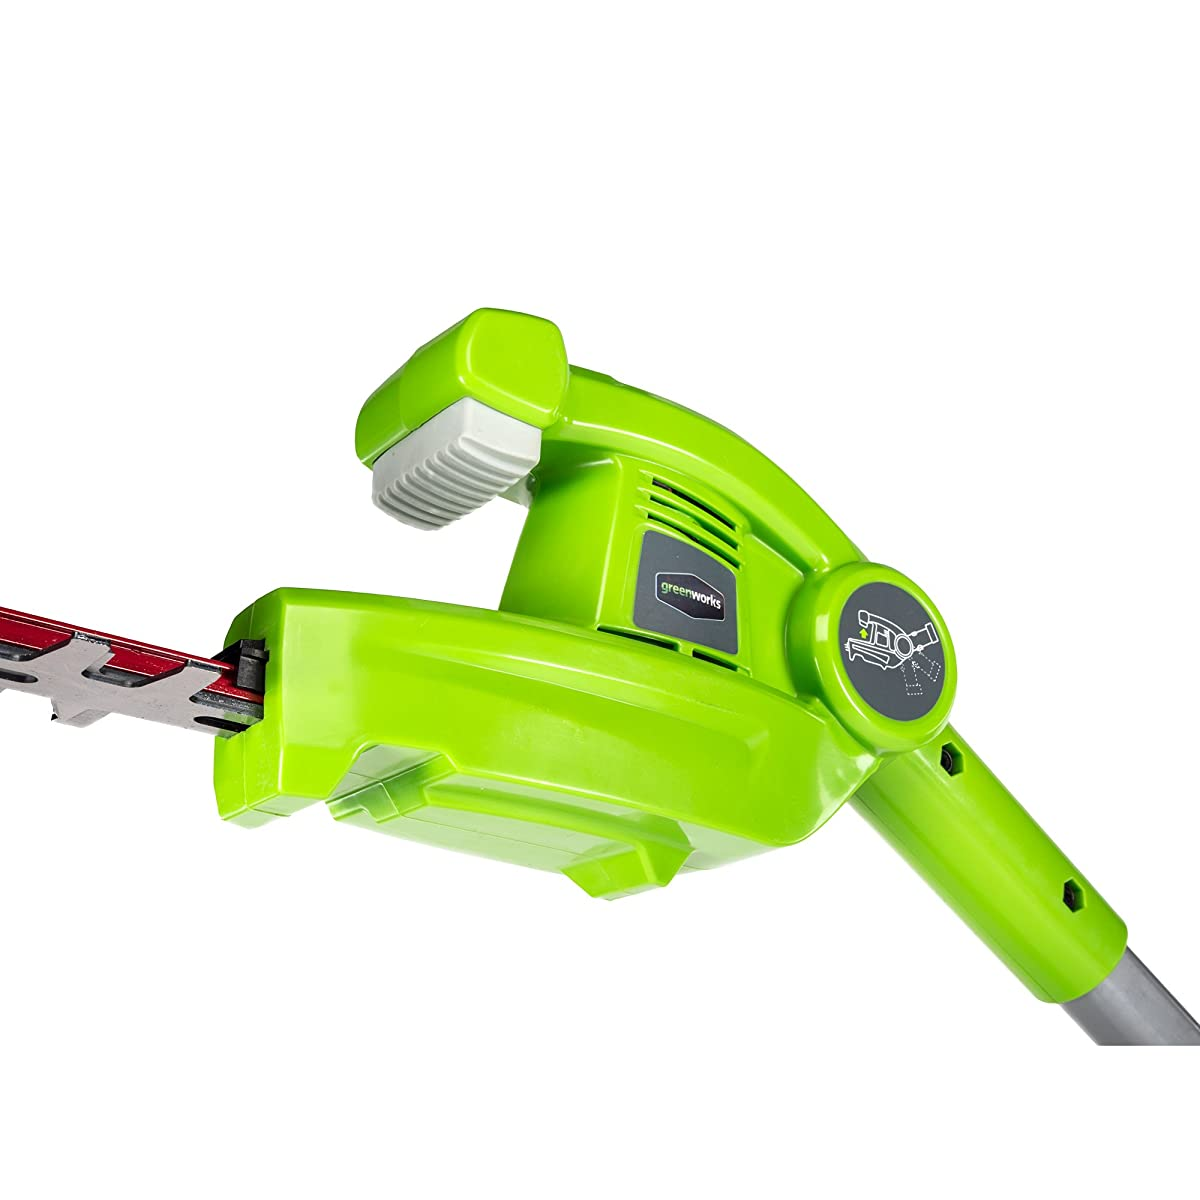 Greenworks 7.25 40V Cordless, 2.0 AH Battery Included PH40B210 Pole Hedge Trimmer, Electric Lime